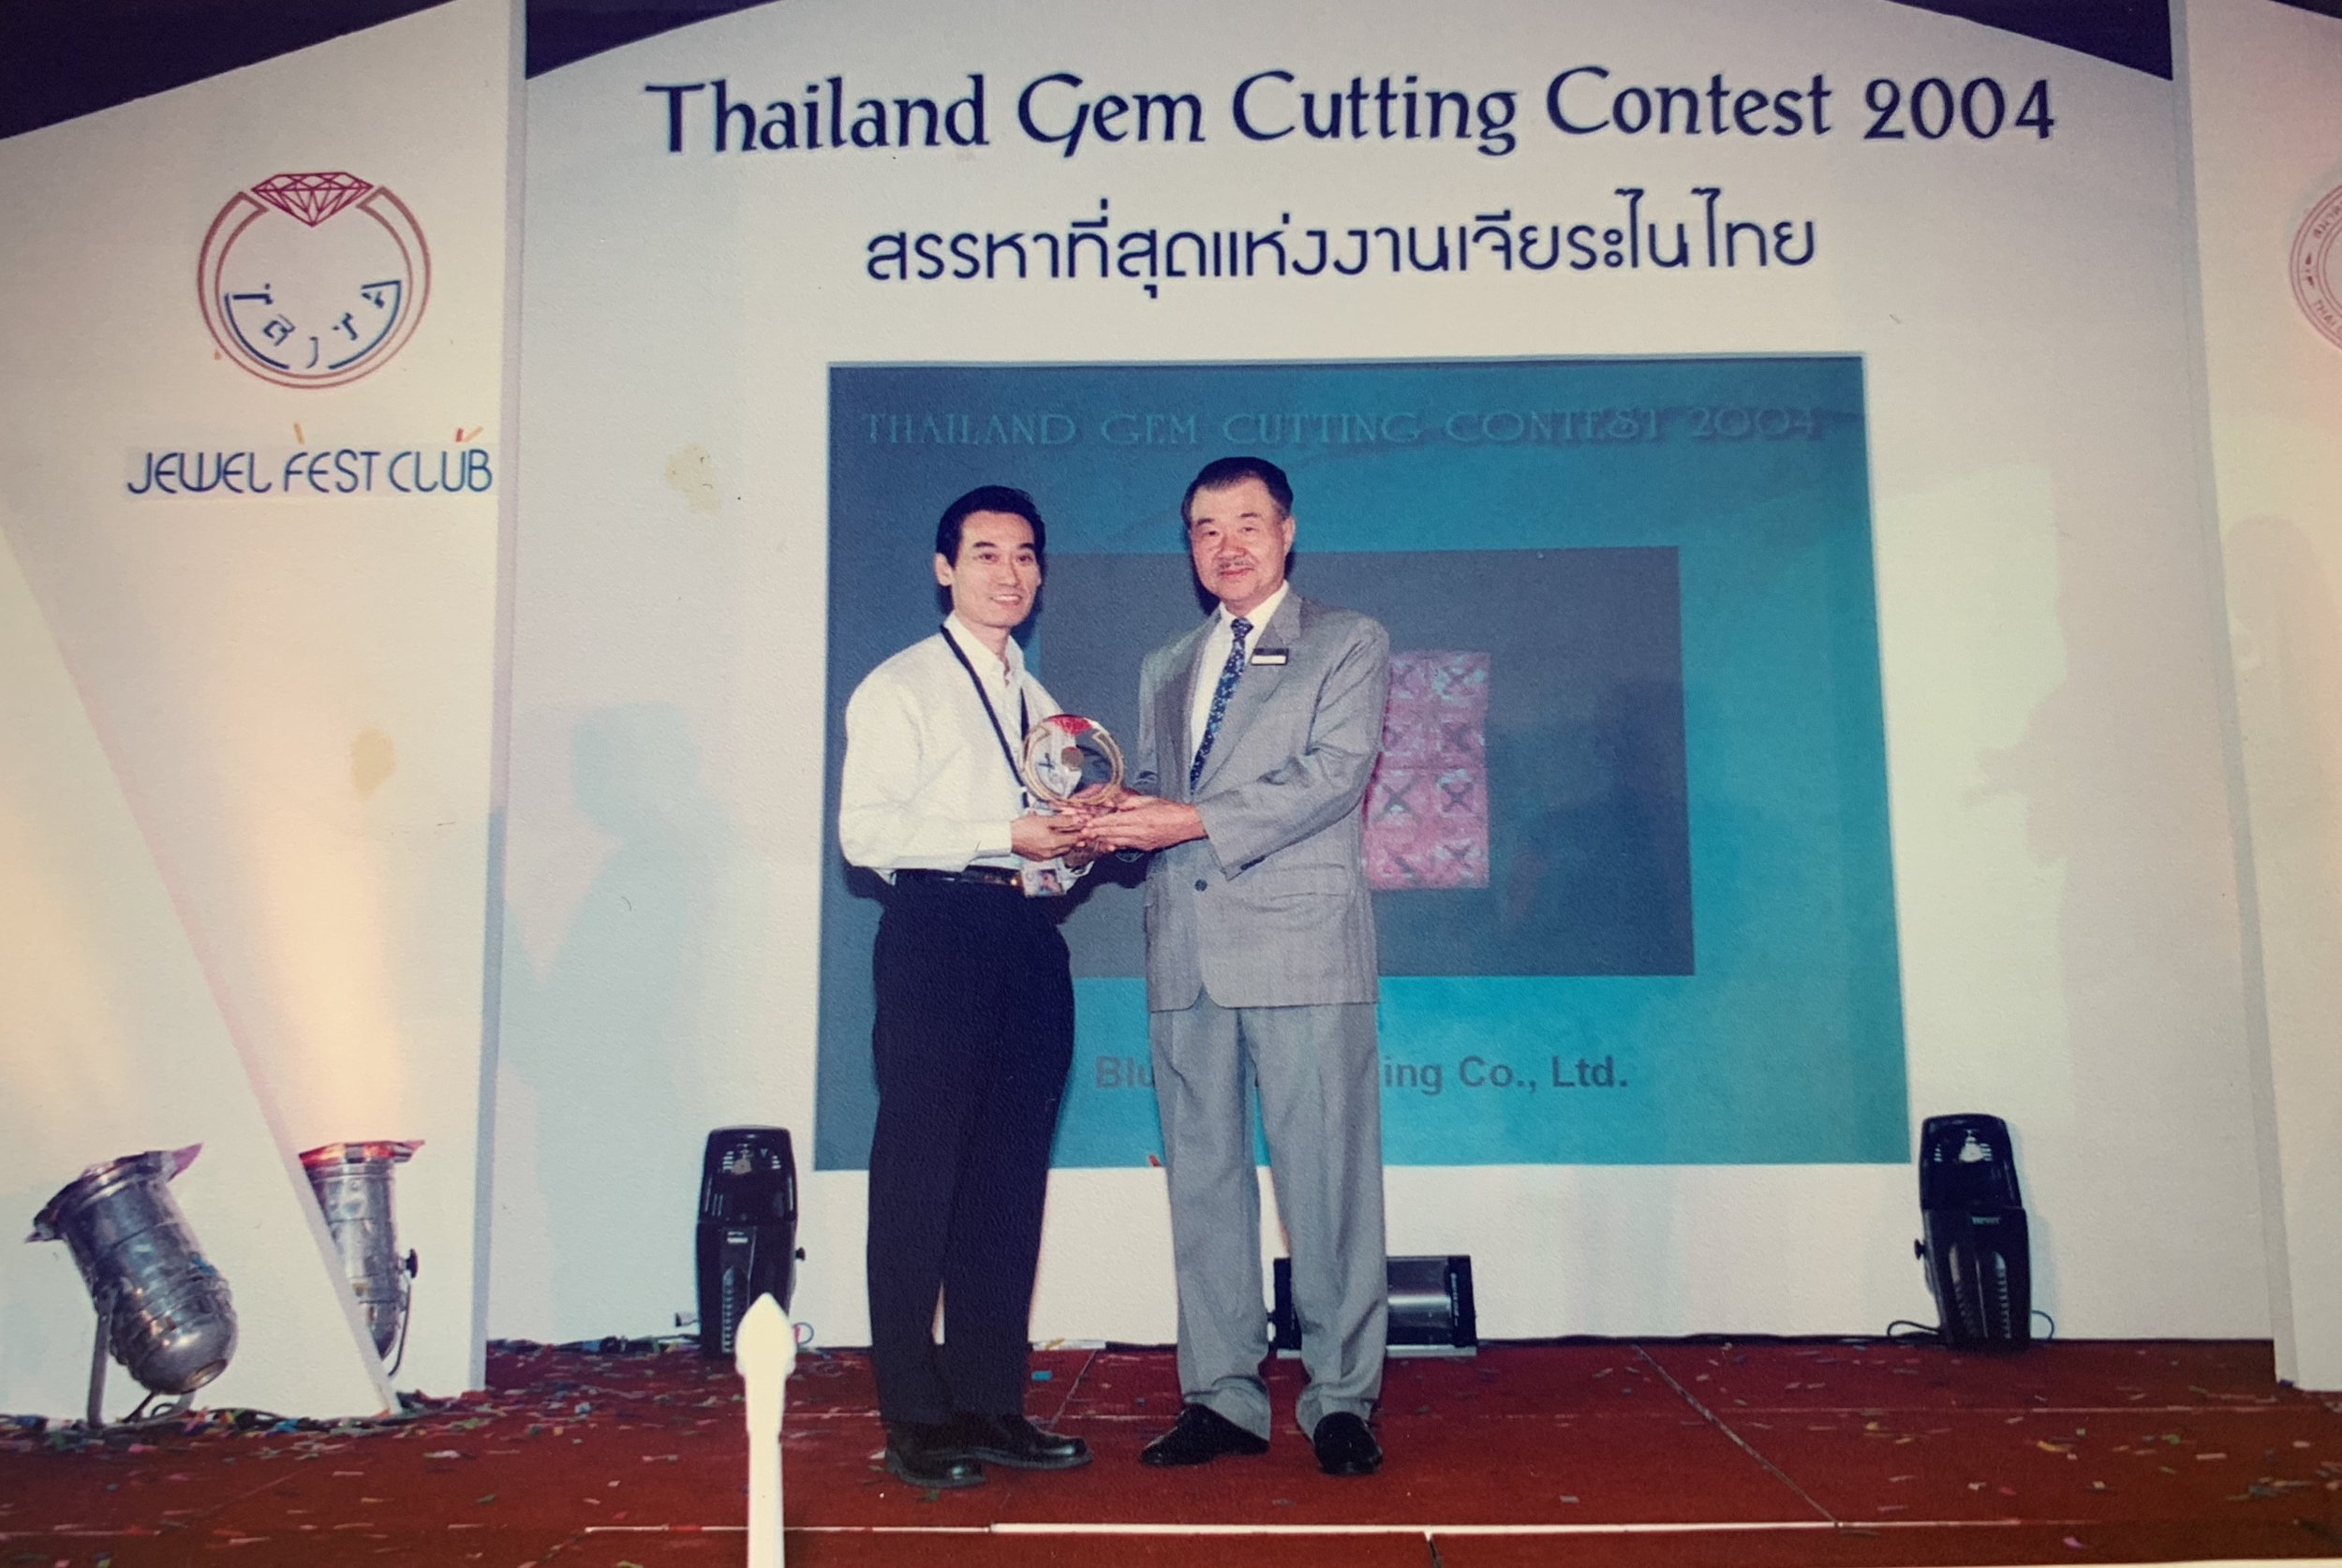 Mr. Bunlua Rungsakaolert (MD), was awarded with the 1st prize for princess cut 2.50mm at Thailand Gem Cutting Contest 2004.